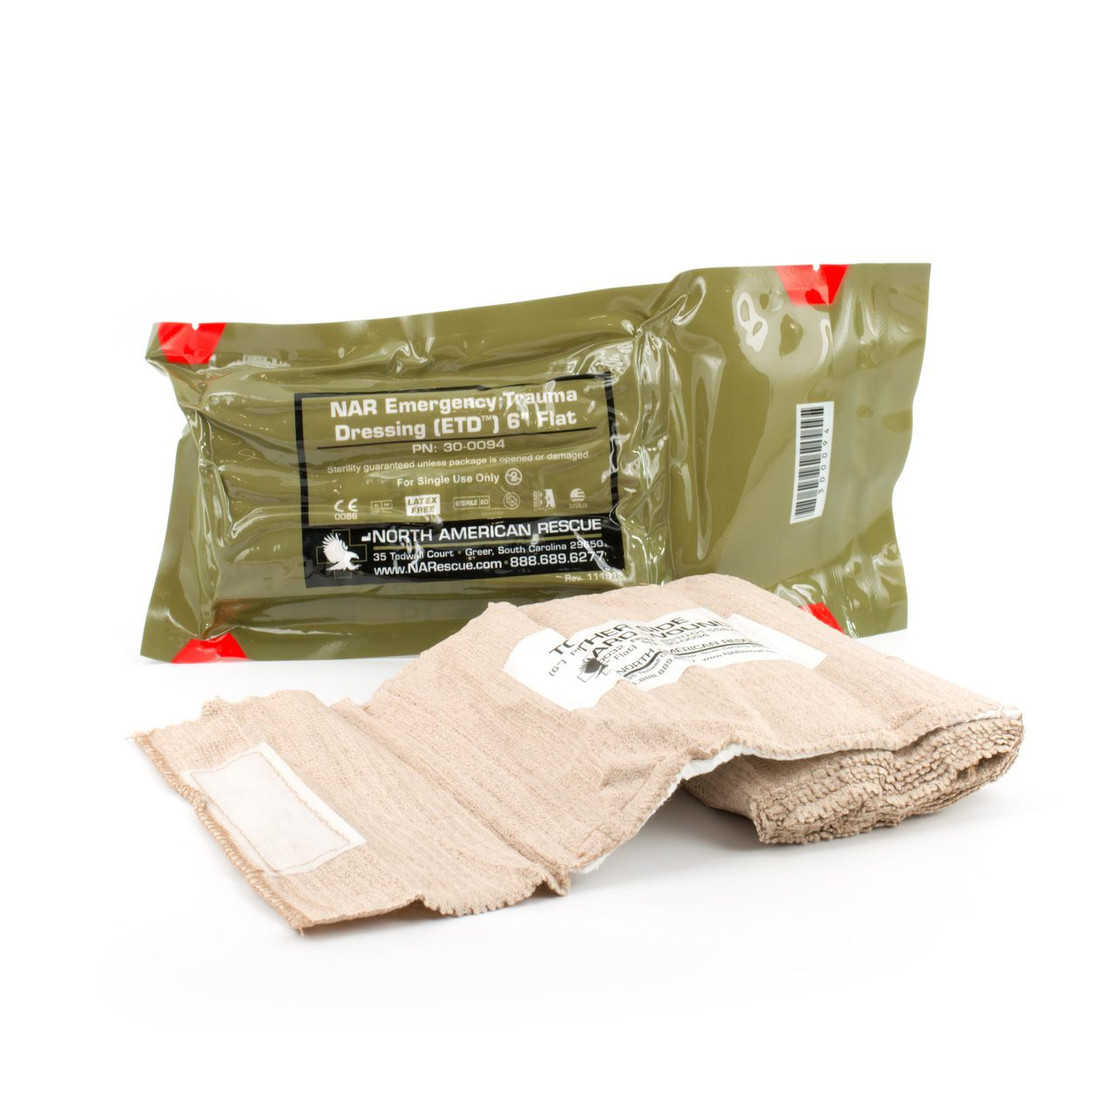 "North American Rescue - Emergency Trauma Dressing 4"" Flat"